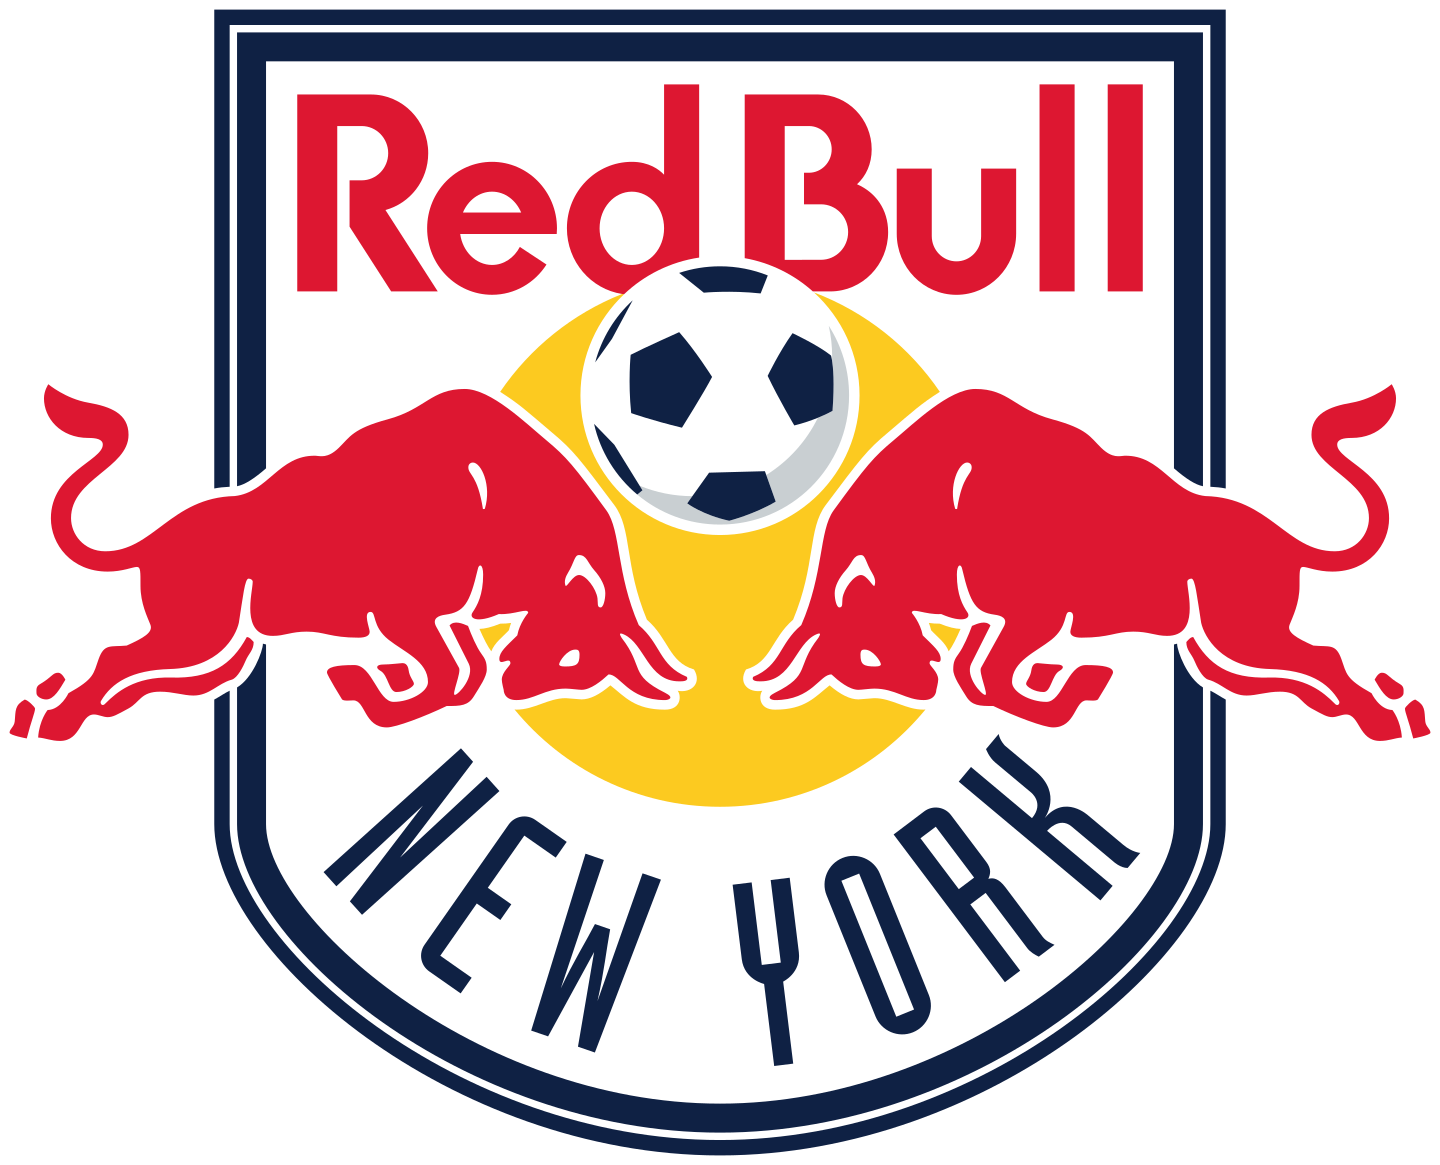 new york red bulls logo 2 - New York Red Bulls Logo